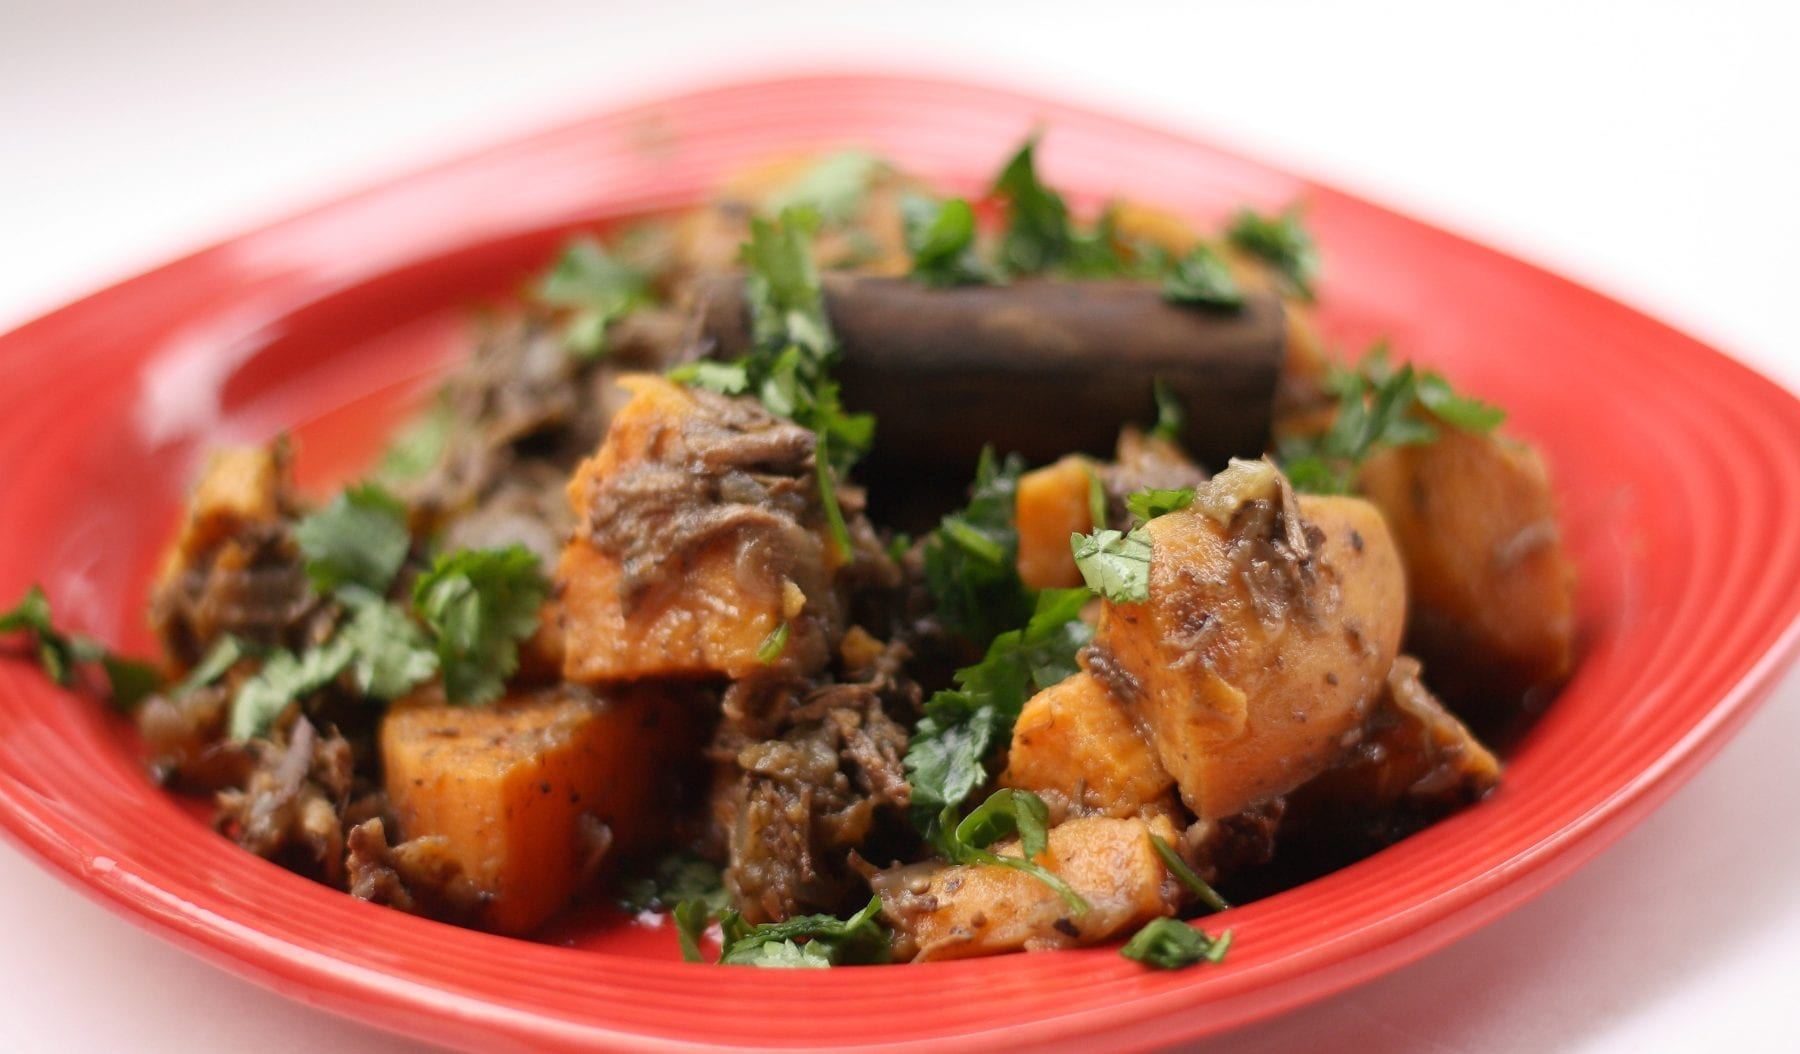 Daring Cooks November 2011 – Beef Braised in Tea with Sweet Potatoes